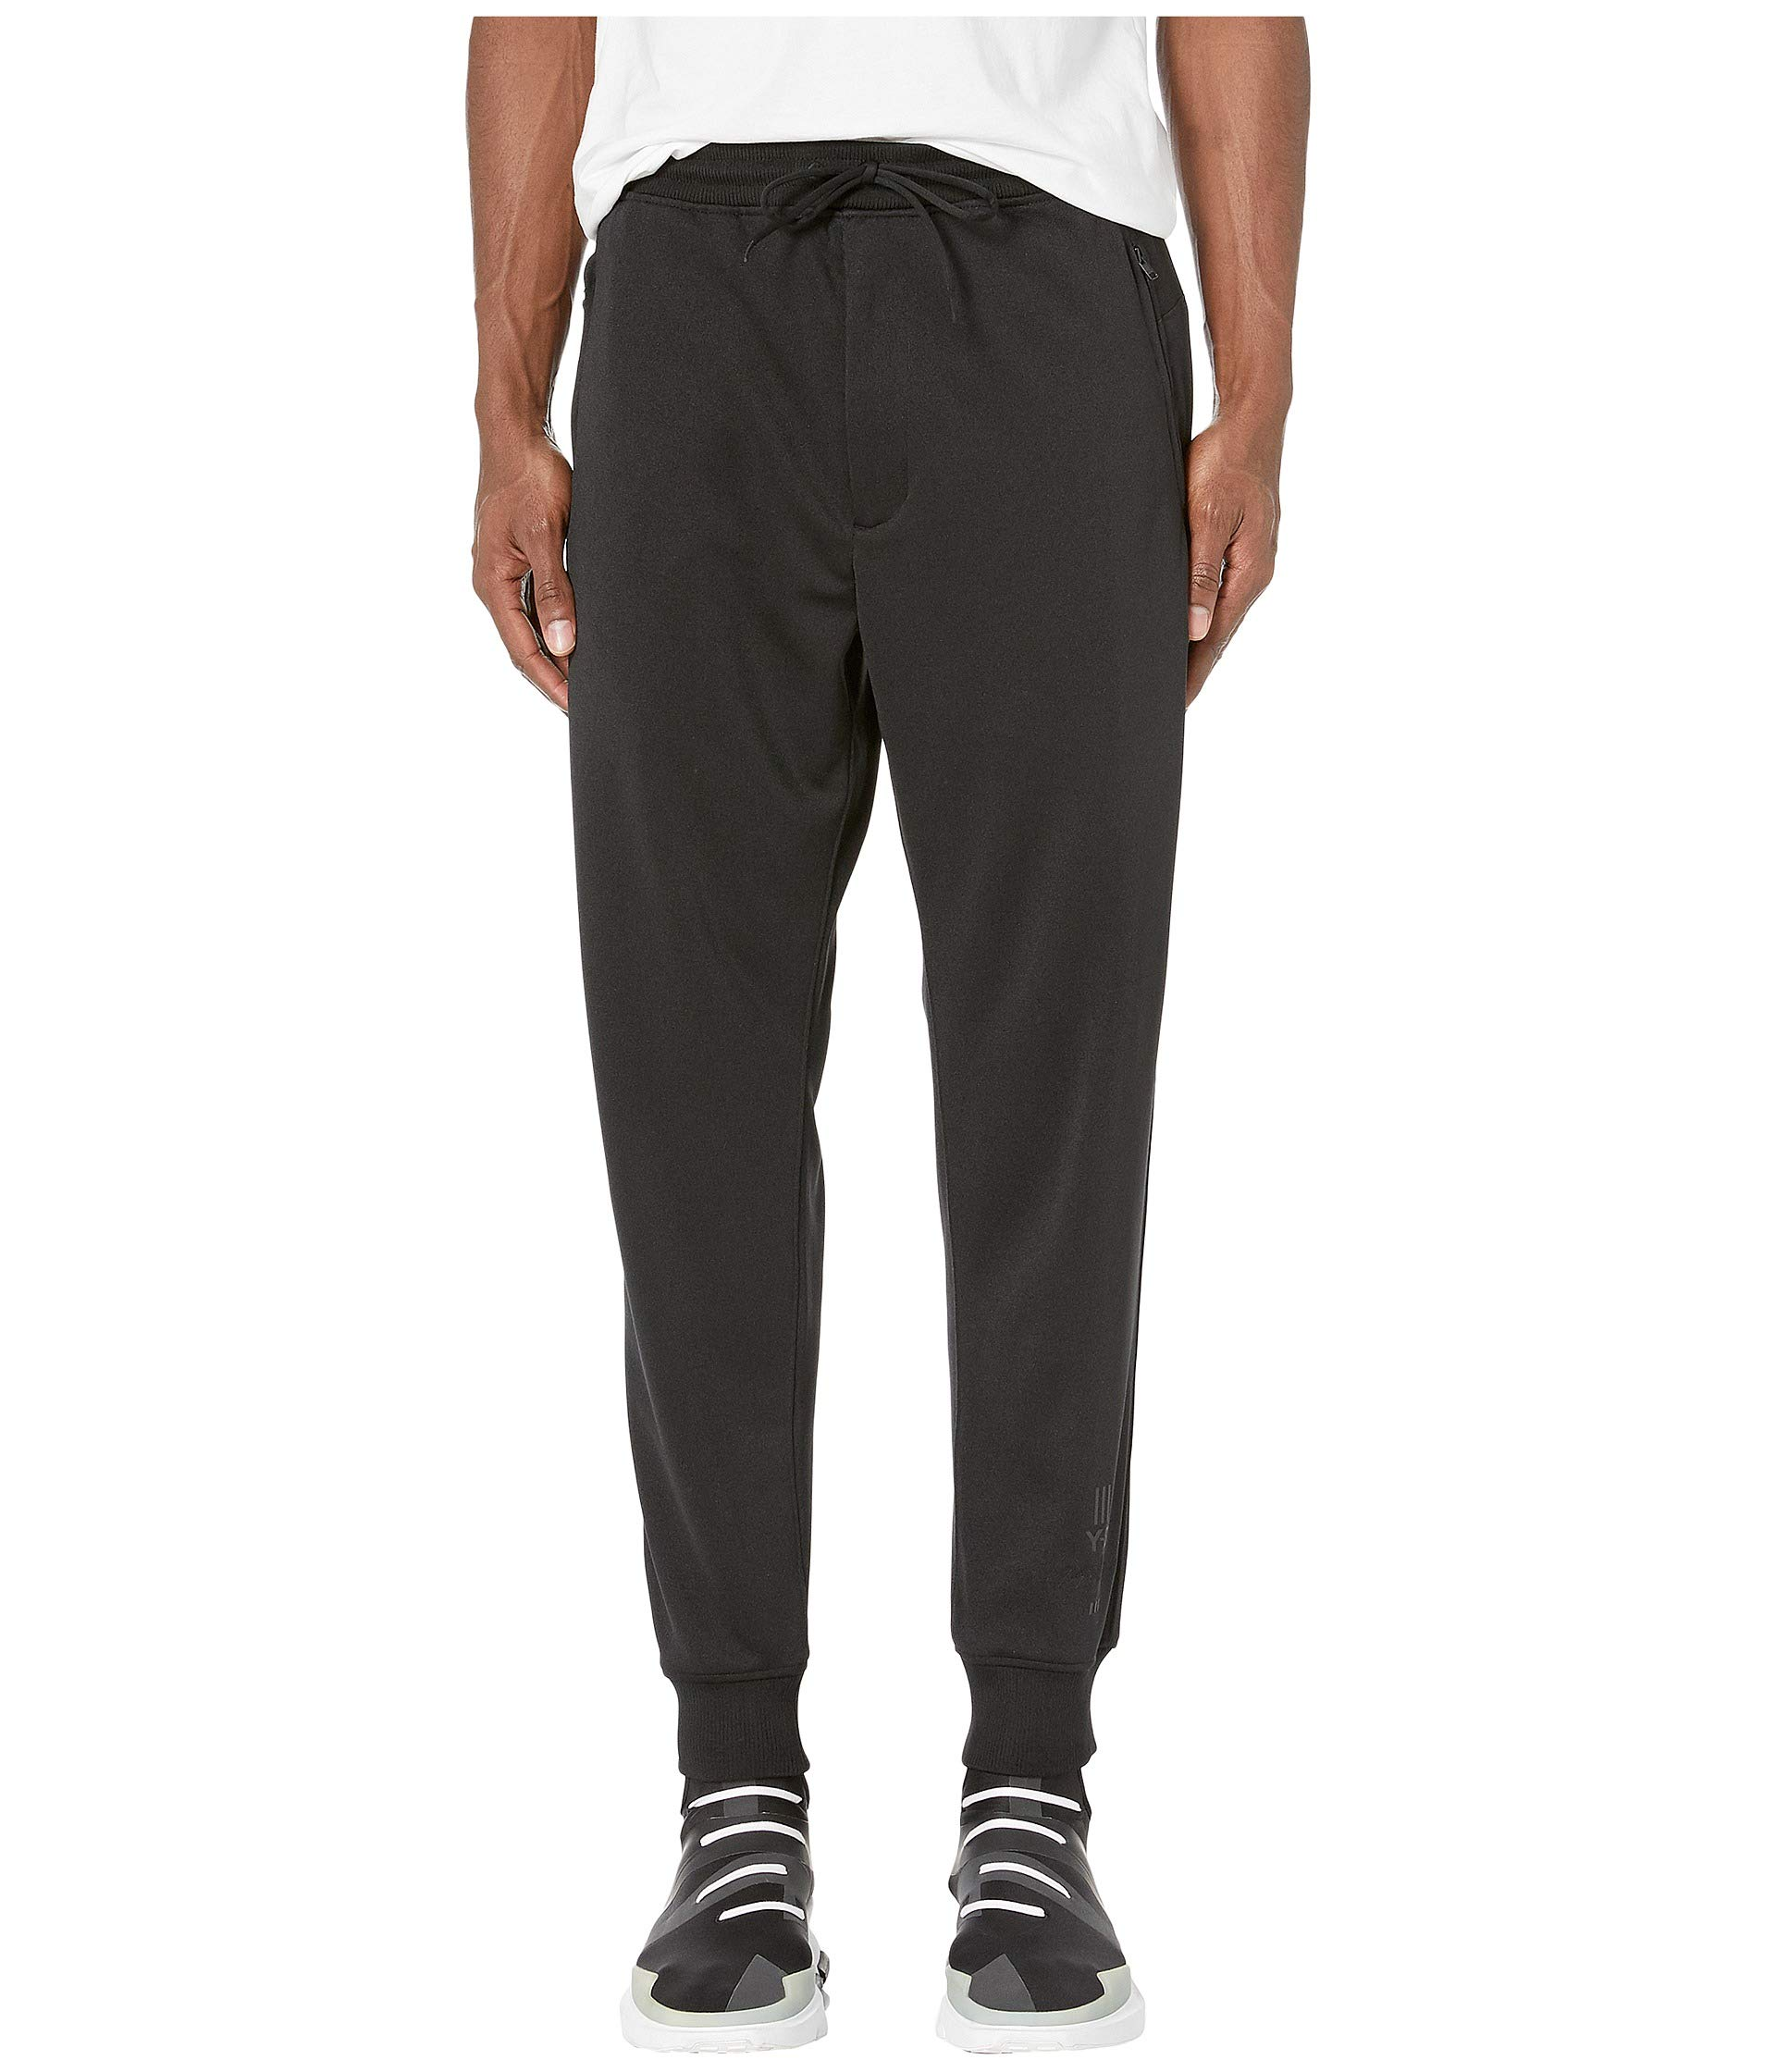 033380766700 adidas Y-3 by Yohji Yamamoto New Classic Track Pants at Luxury ...